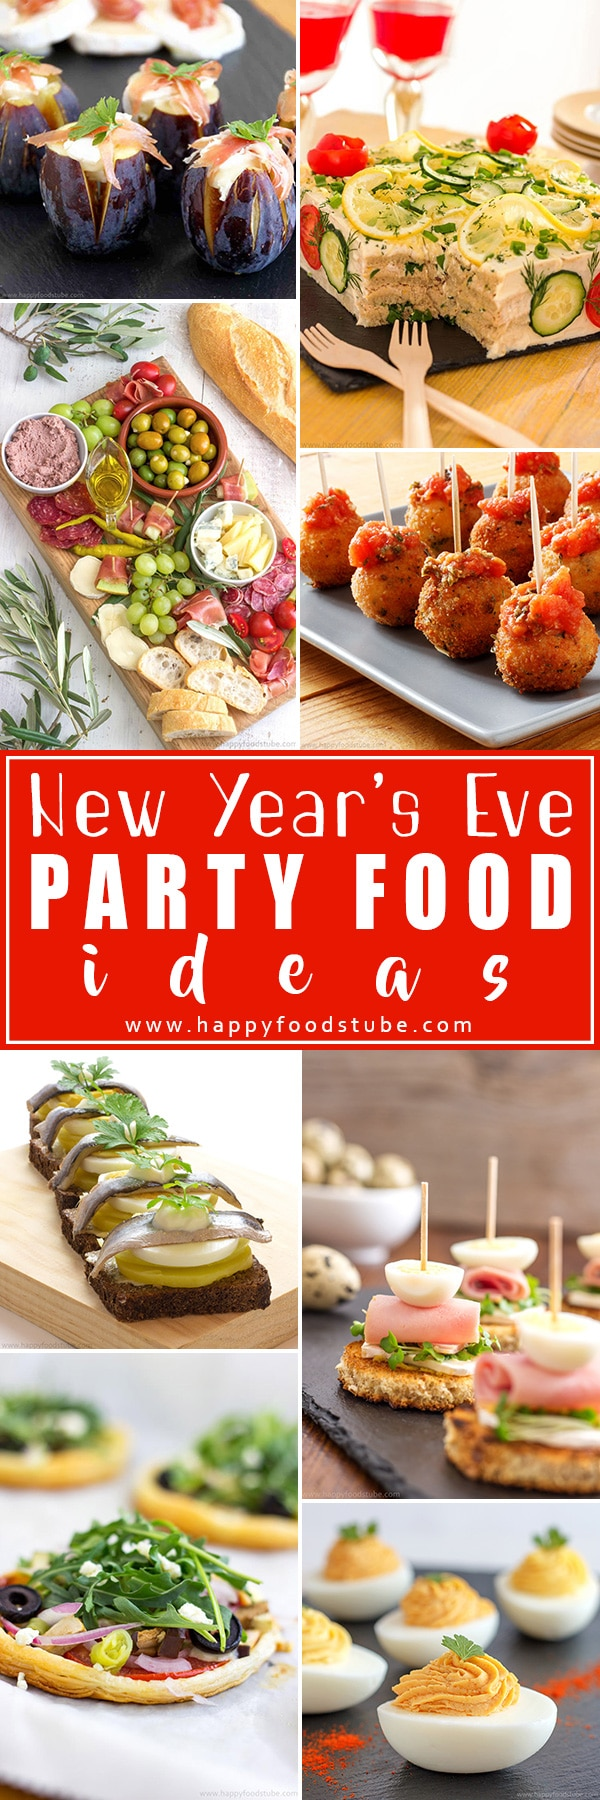 Looking For New Years Eve Party Food